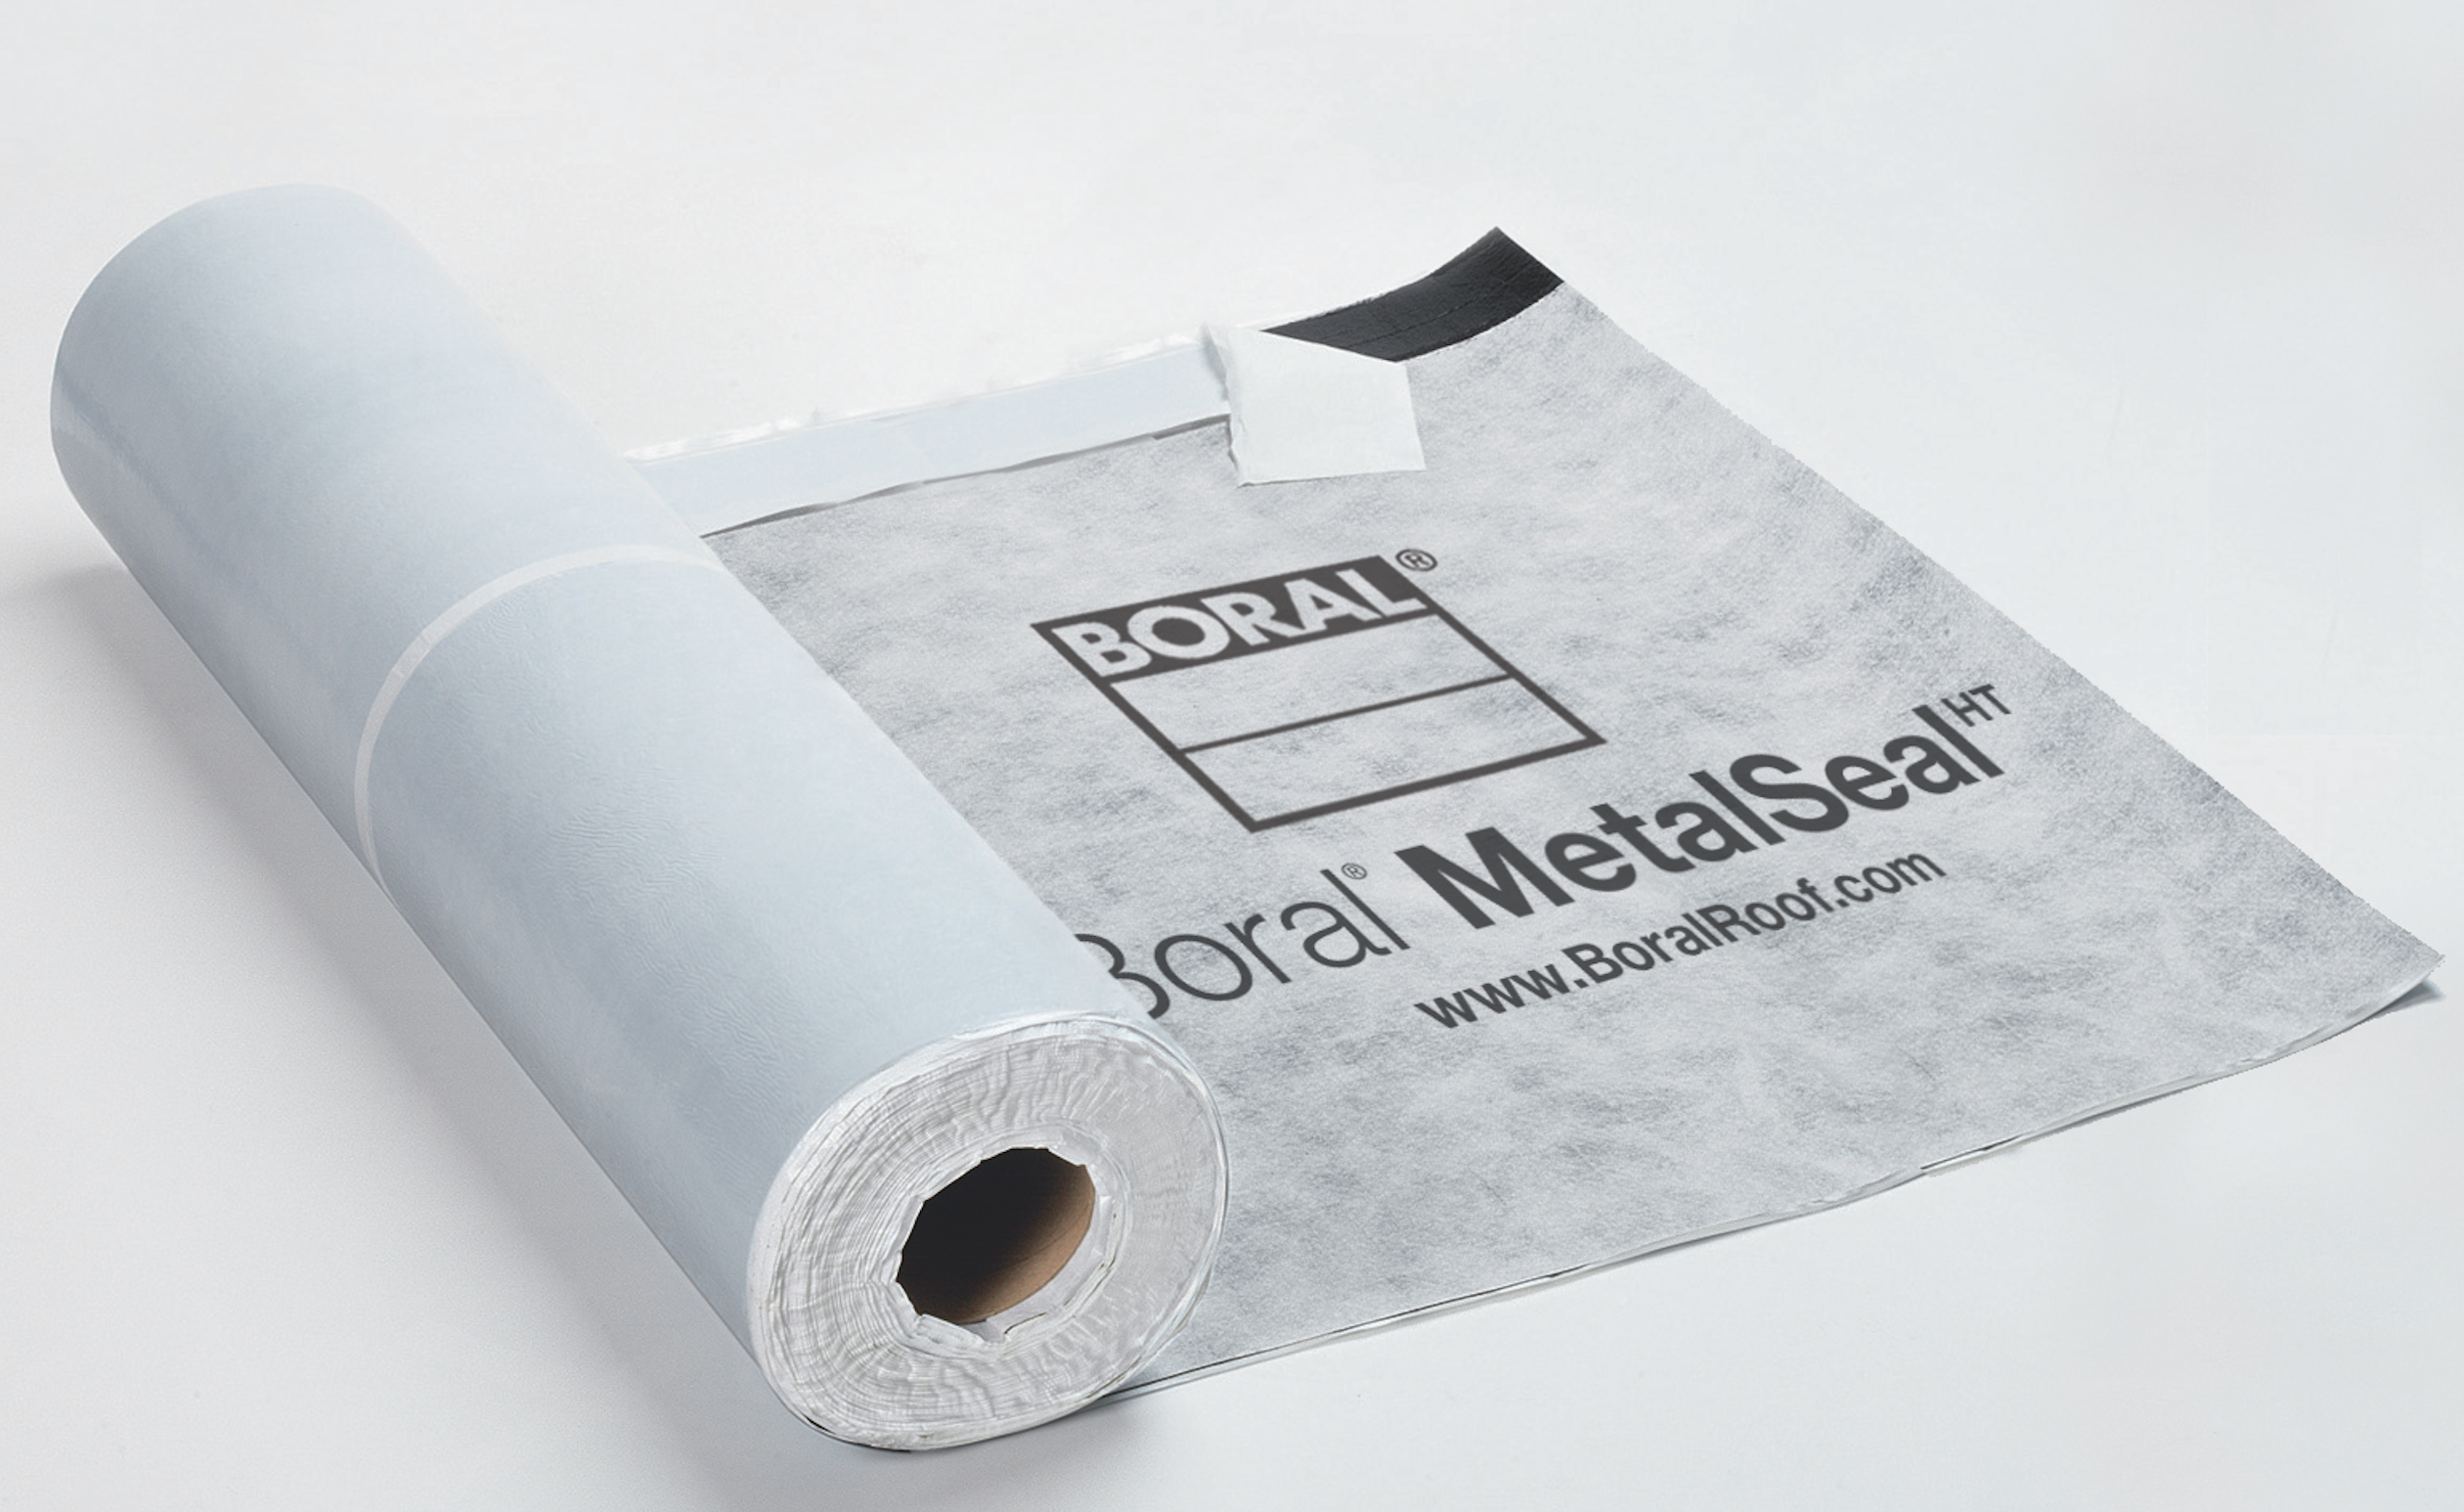 Boral Roofing offers its MetalSeal Underlayment